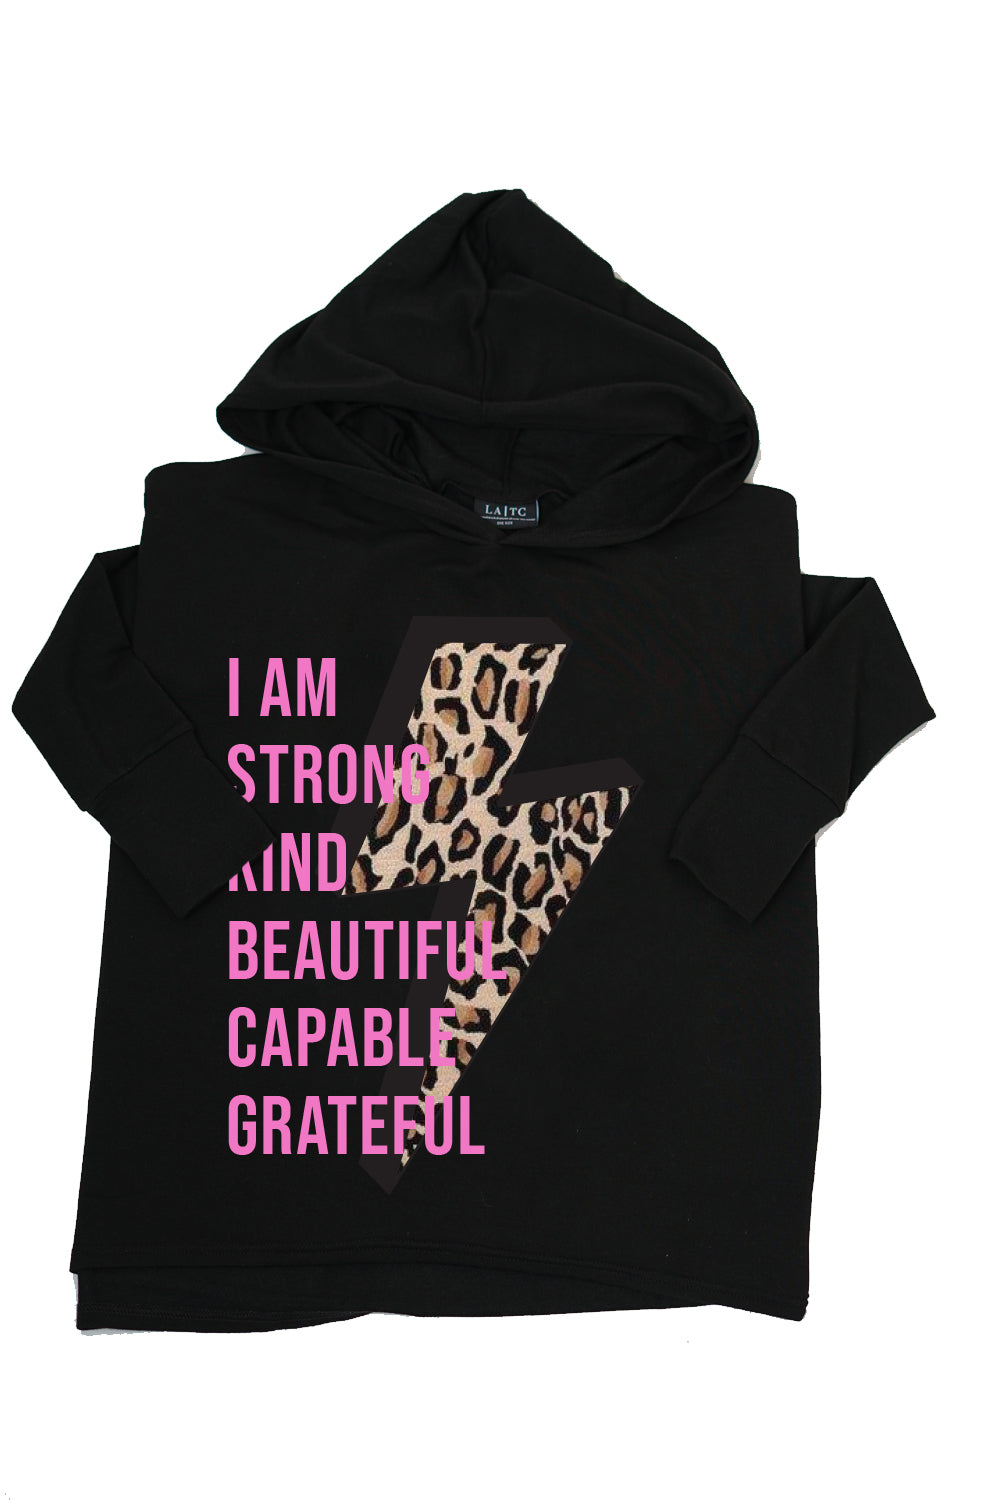 PRISCILLA PONCHO - I am Strong Kind Beautiful Capable Grateful